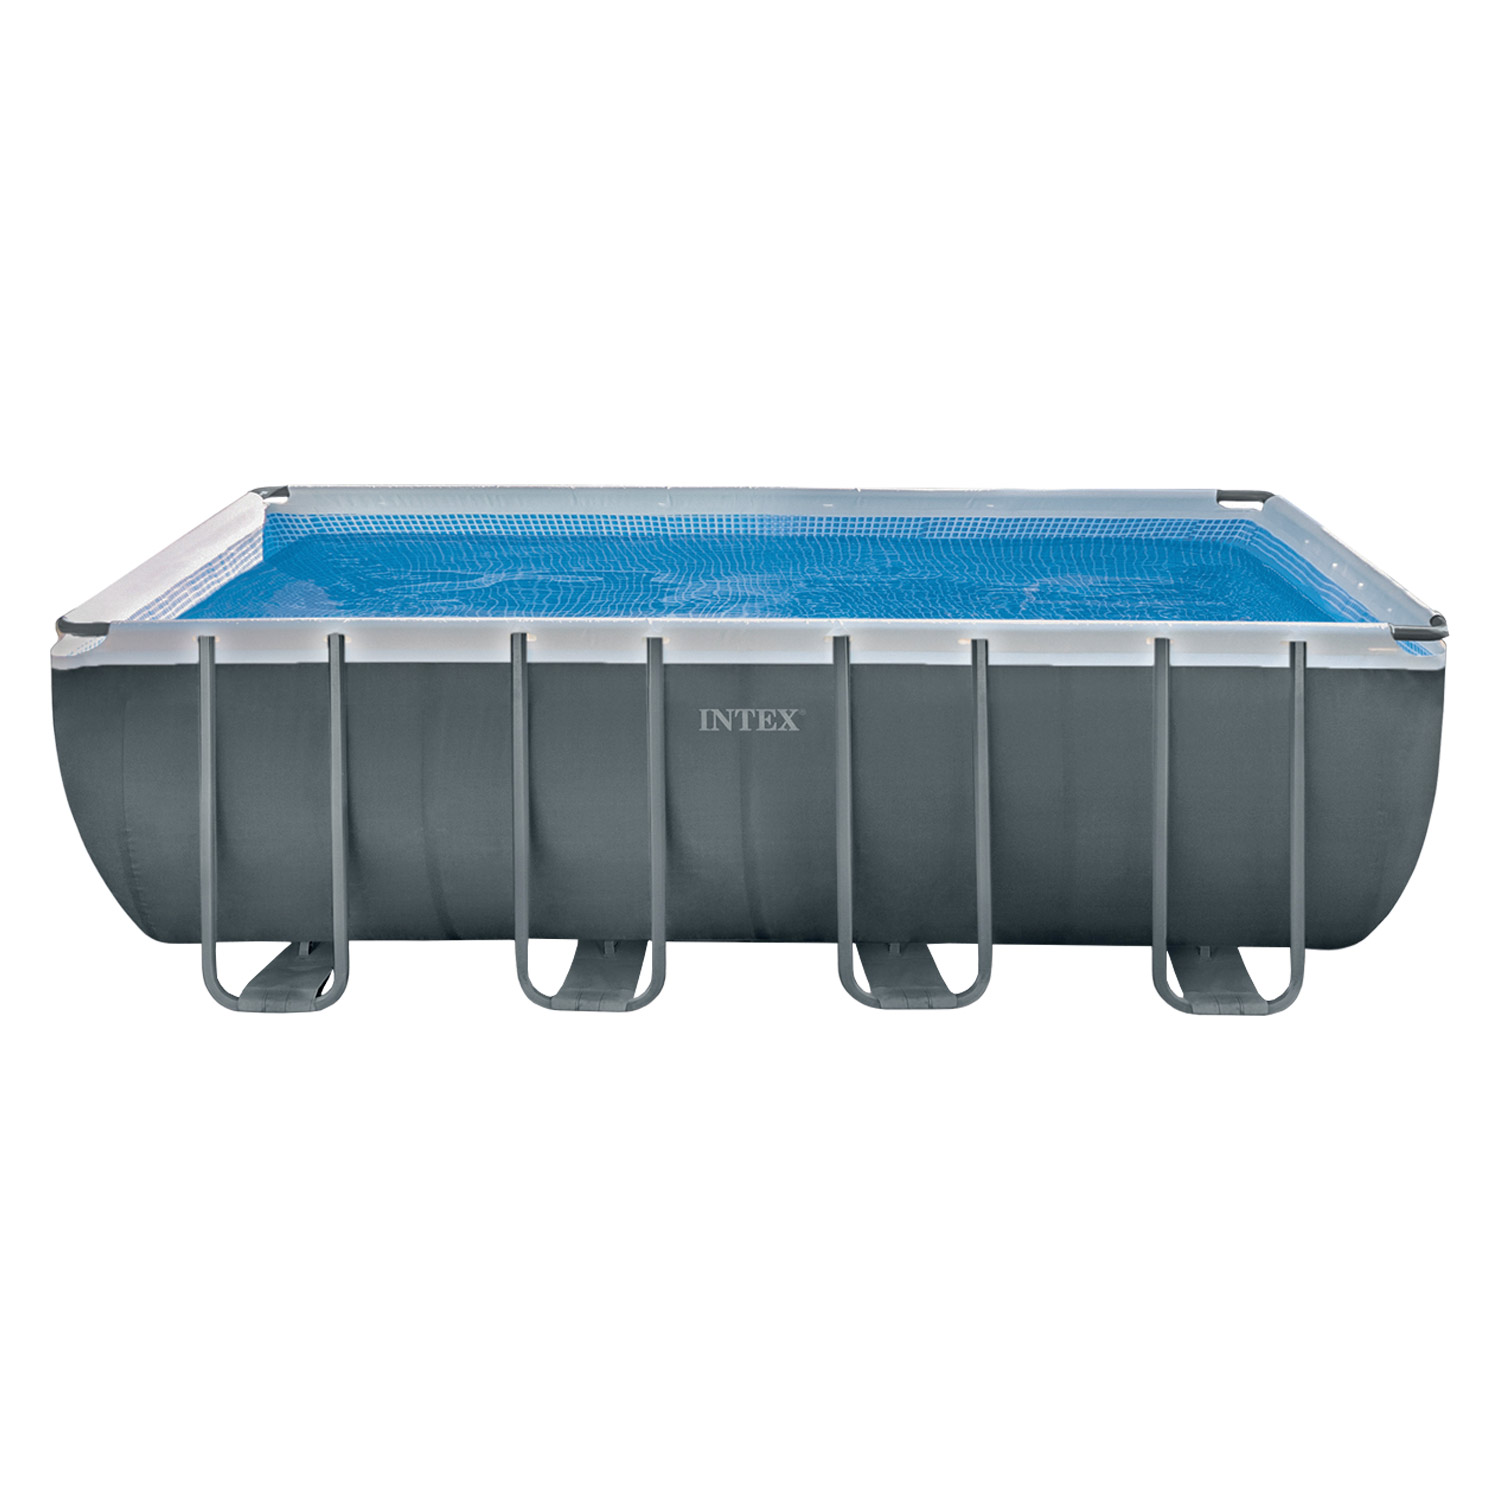 intex swimming pool 549x274x132 frame pool set mit sandfilter xtr schwimmbecken ebay. Black Bedroom Furniture Sets. Home Design Ideas